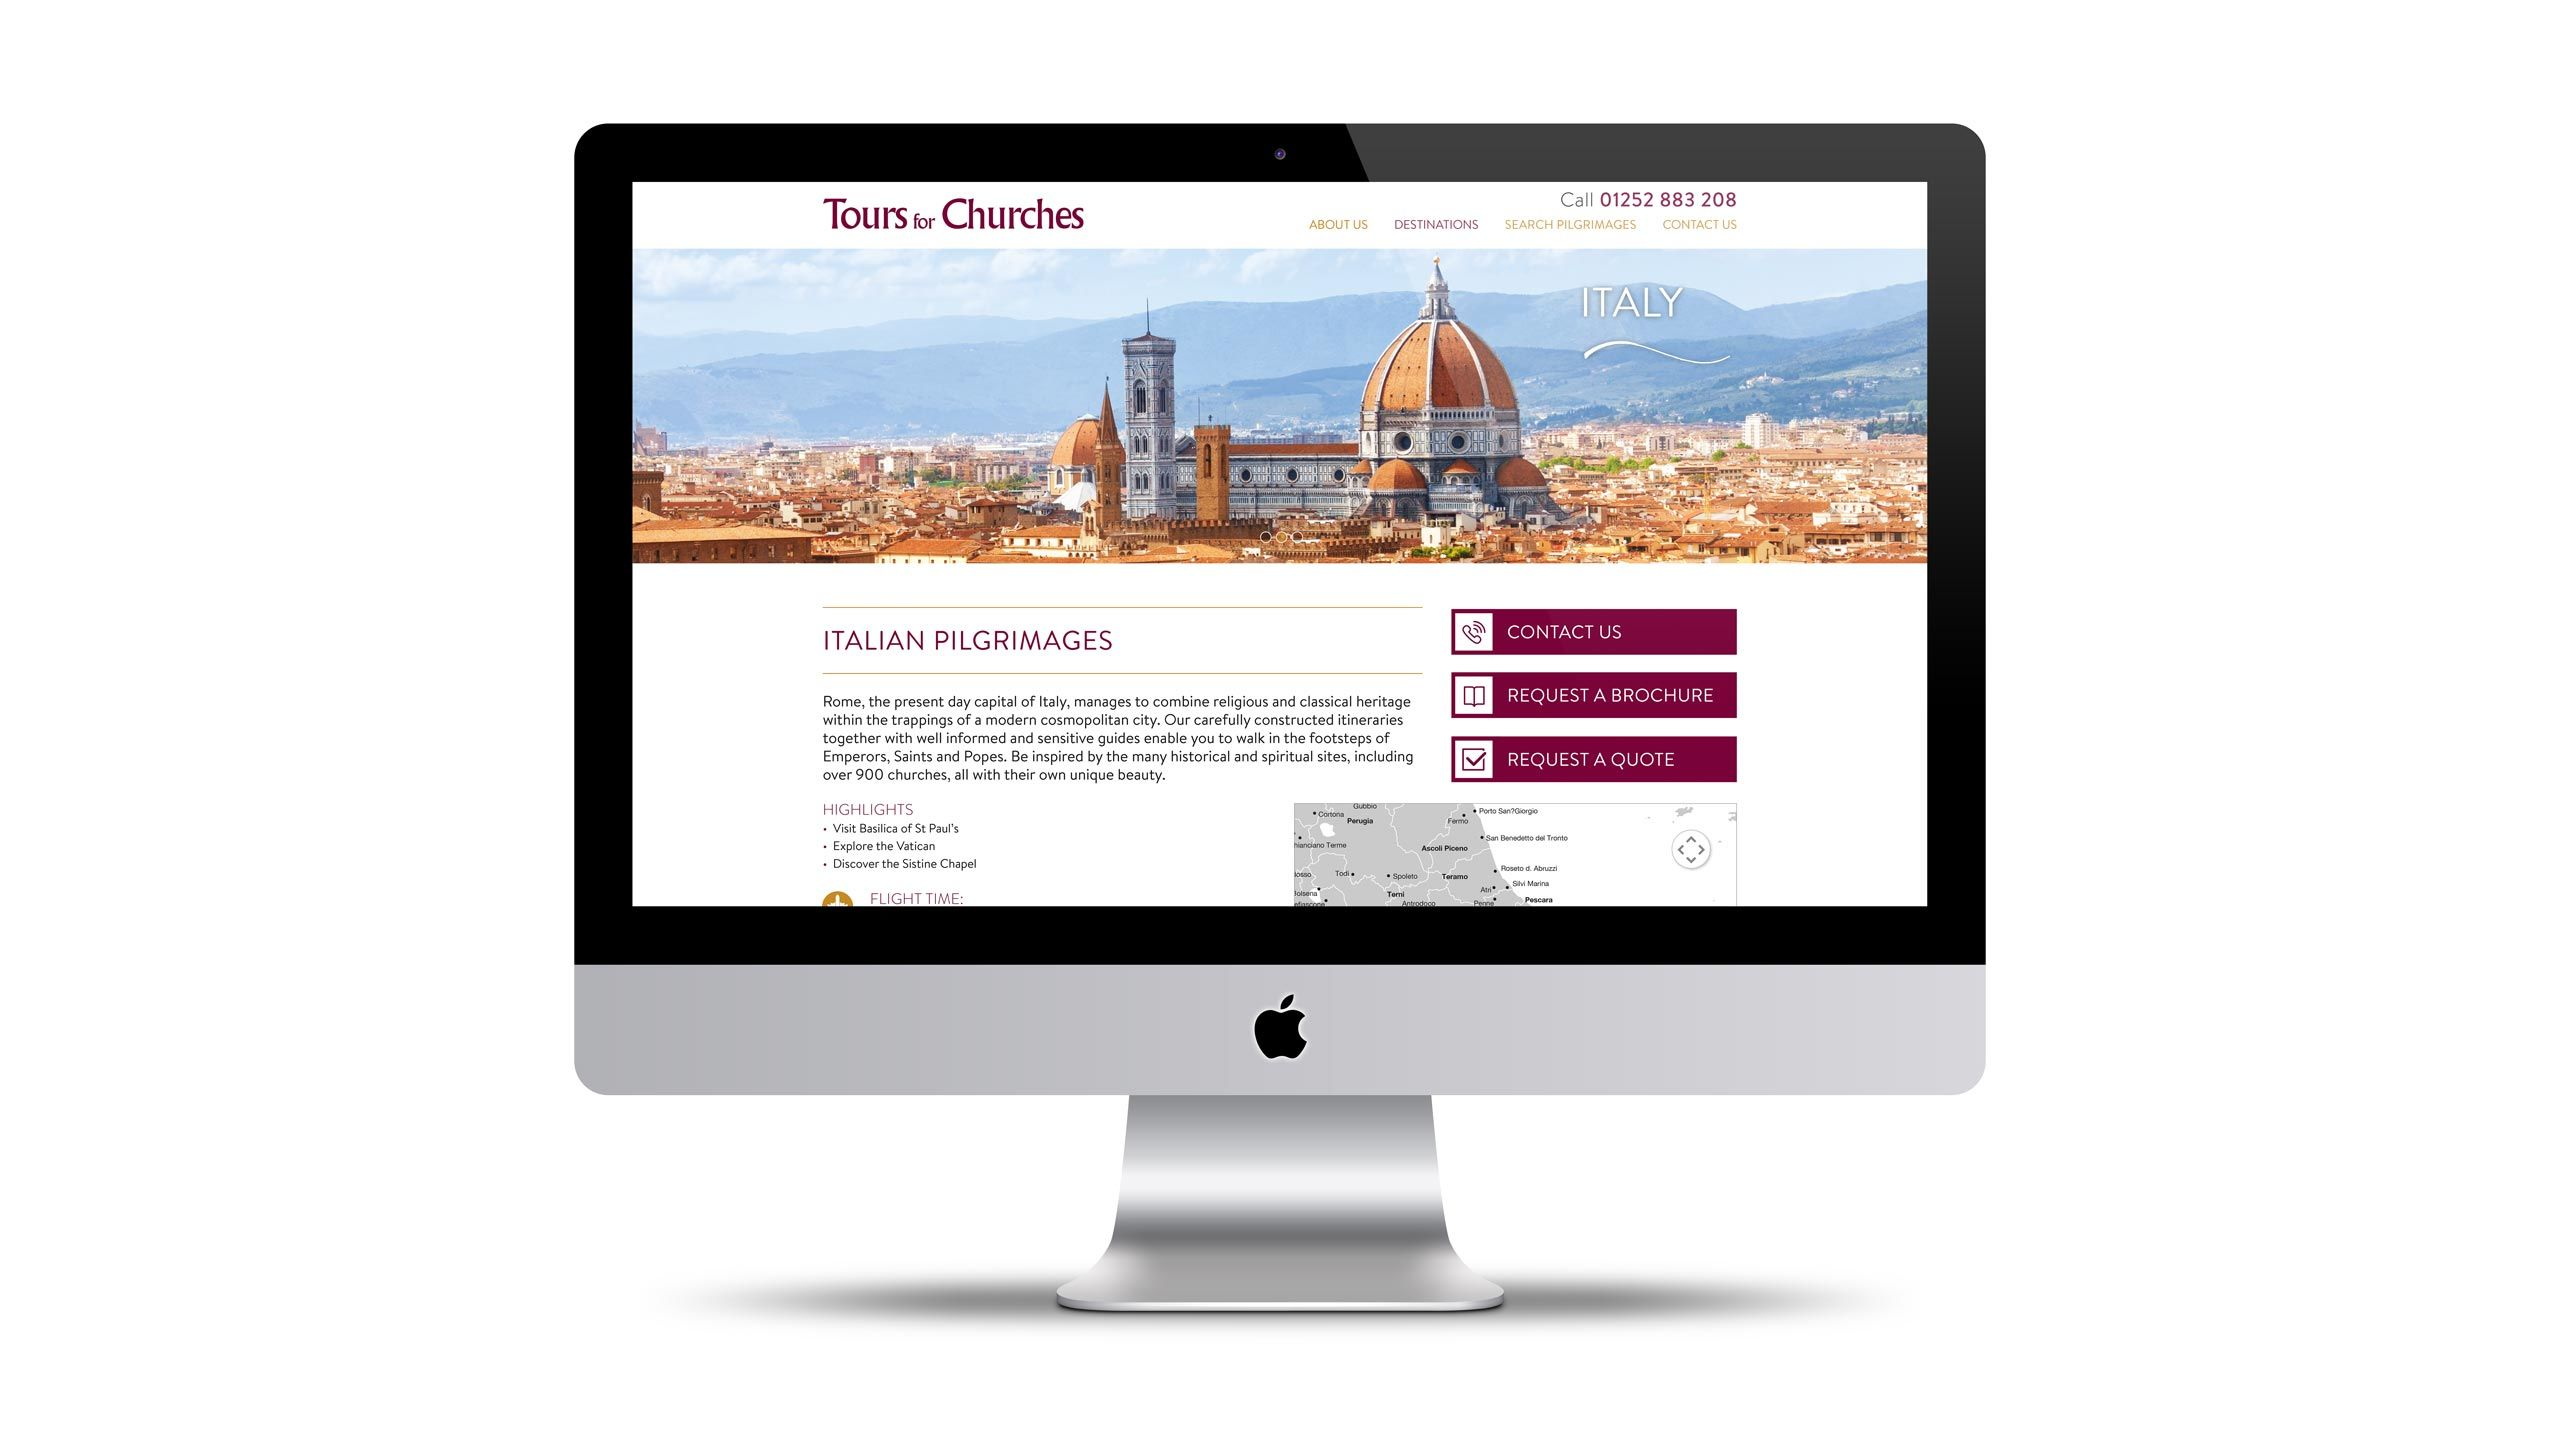 religious tours website design destination page imac tours for churches